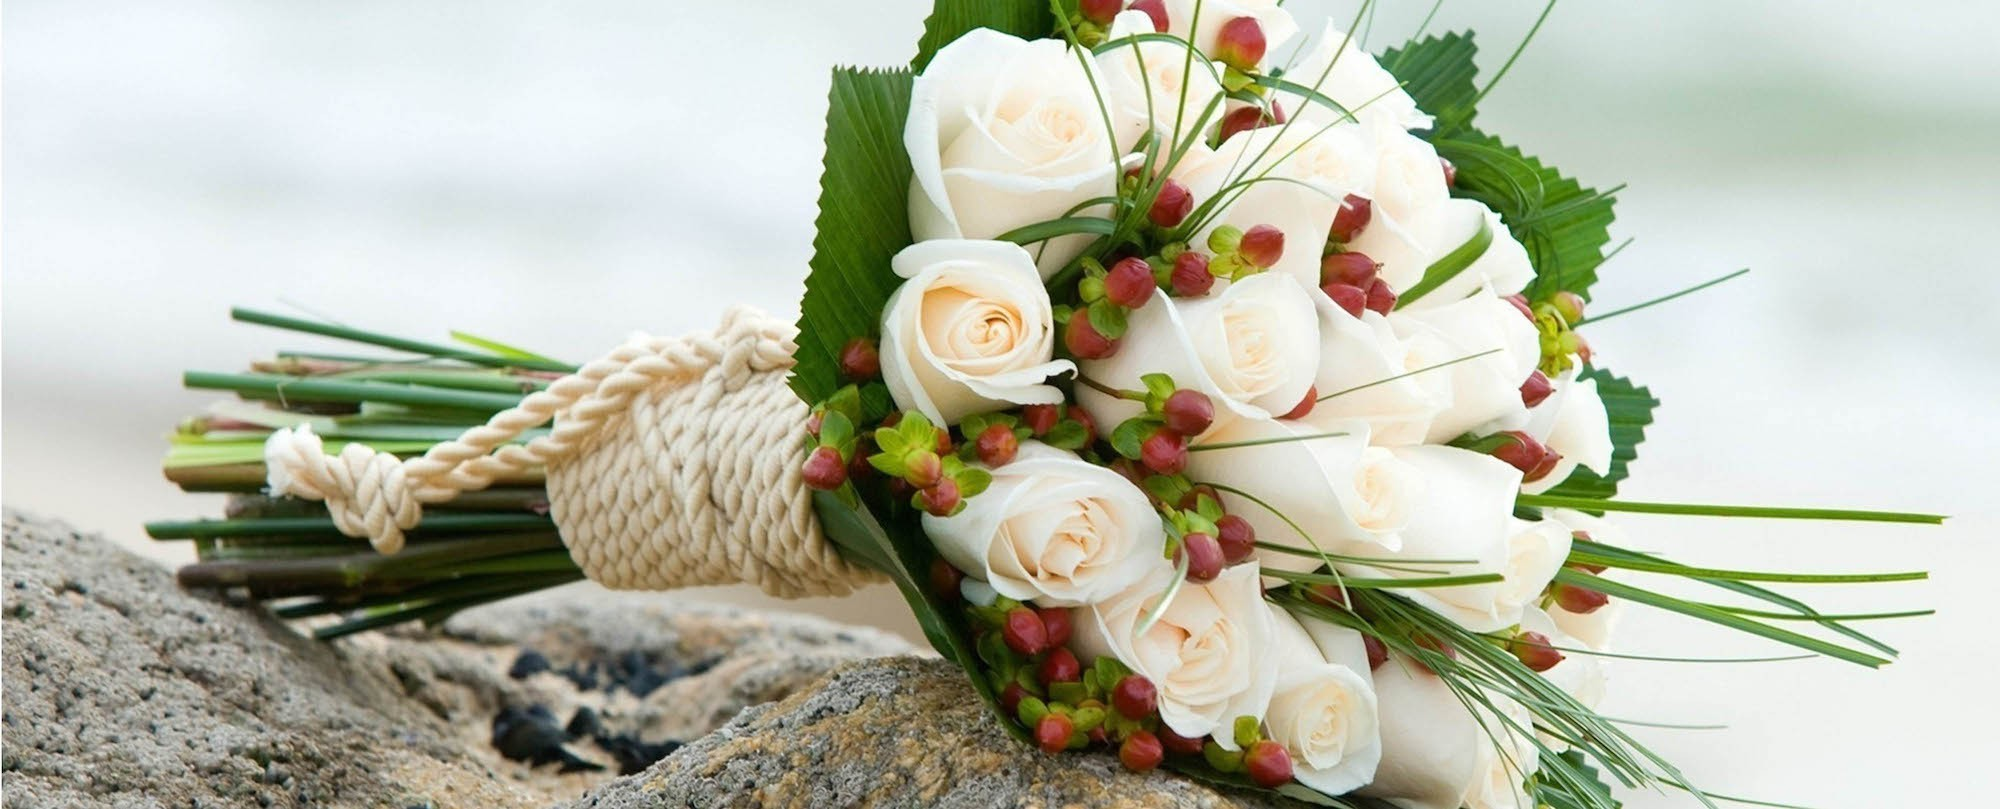 Header Bloemen Karine - Herent